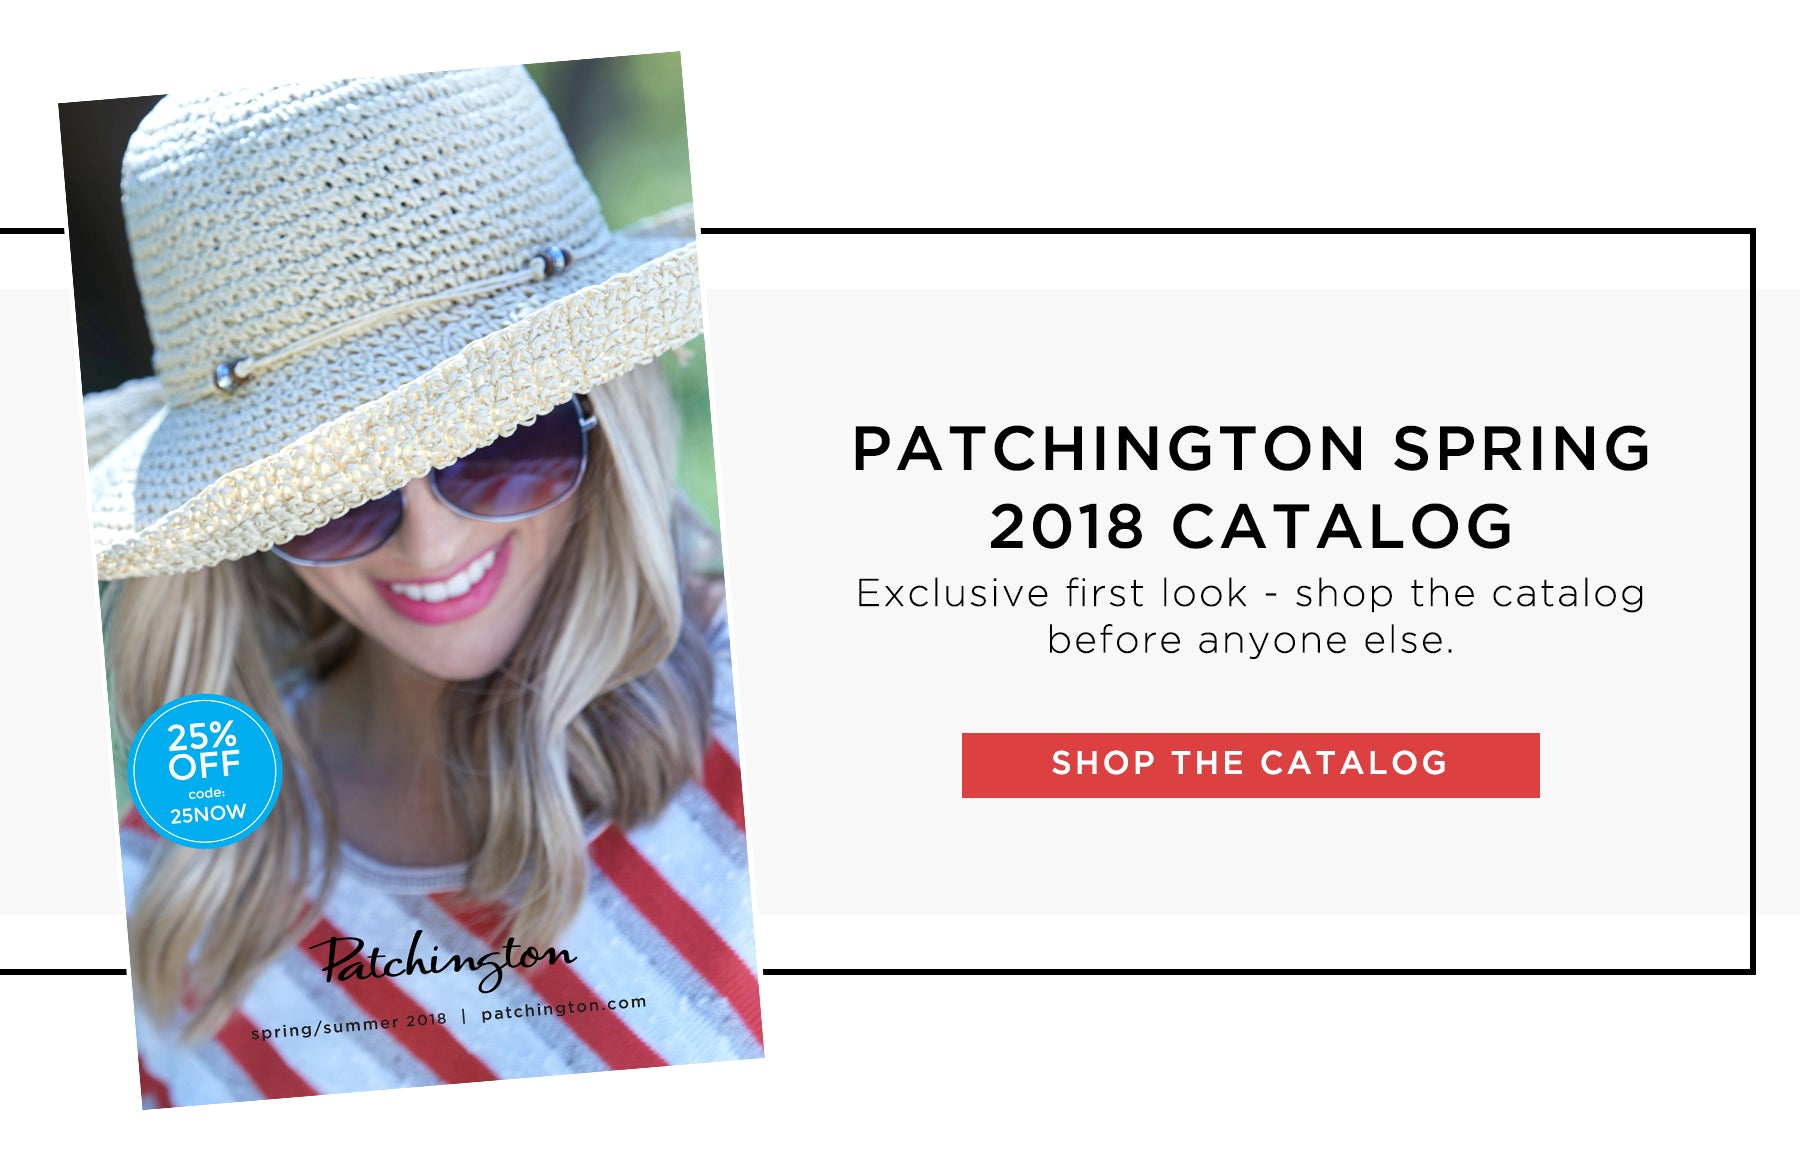 Patchington: Shop the catalog